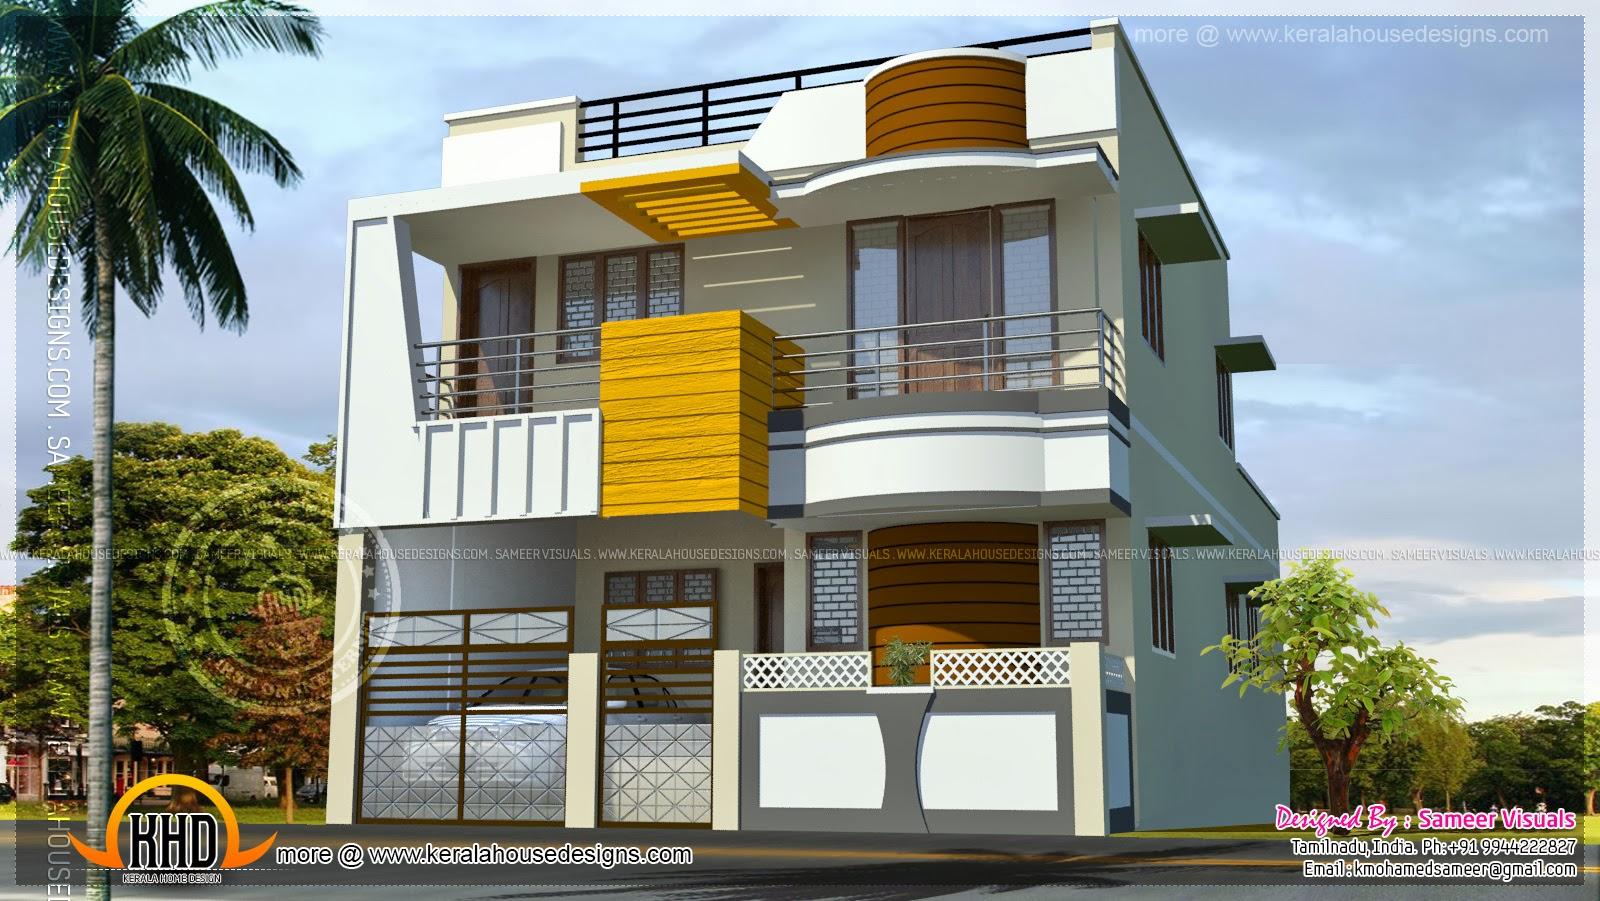 Double storied modern south indian home home kerala plans for Home designs in tamilnadu